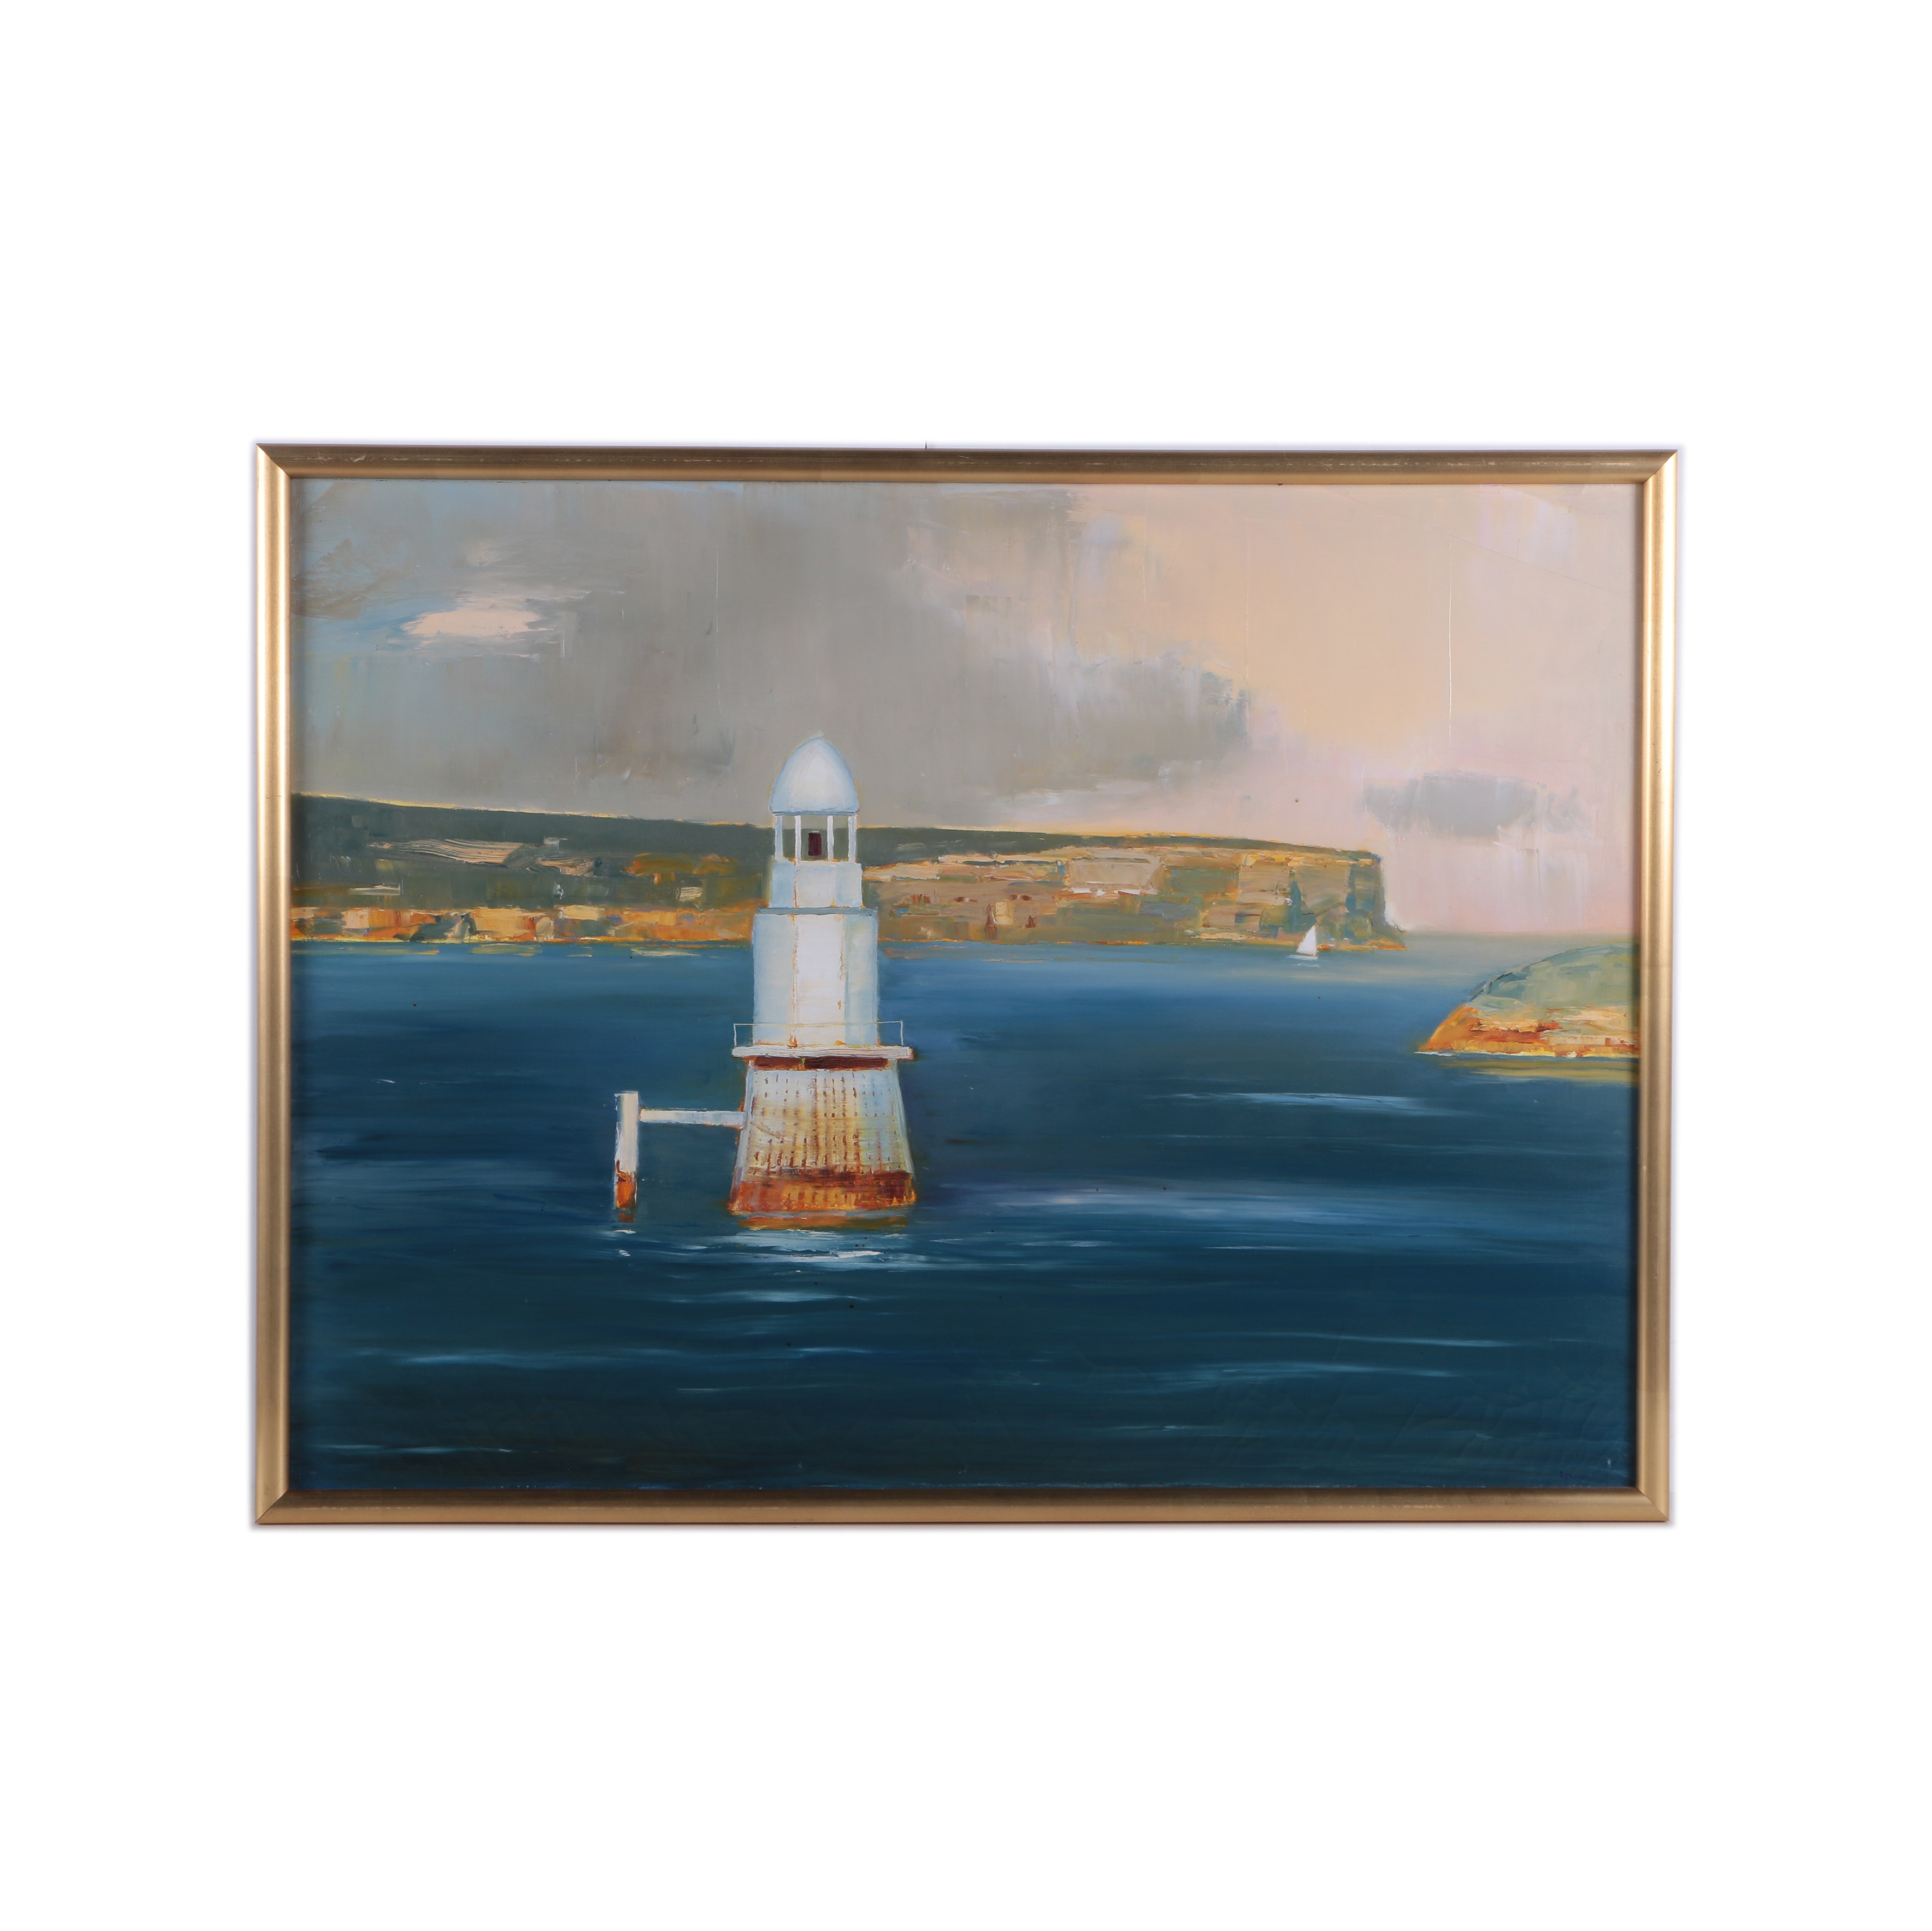 R. Dupain Oil Painting on Canvas Landscape of a Lighthouse